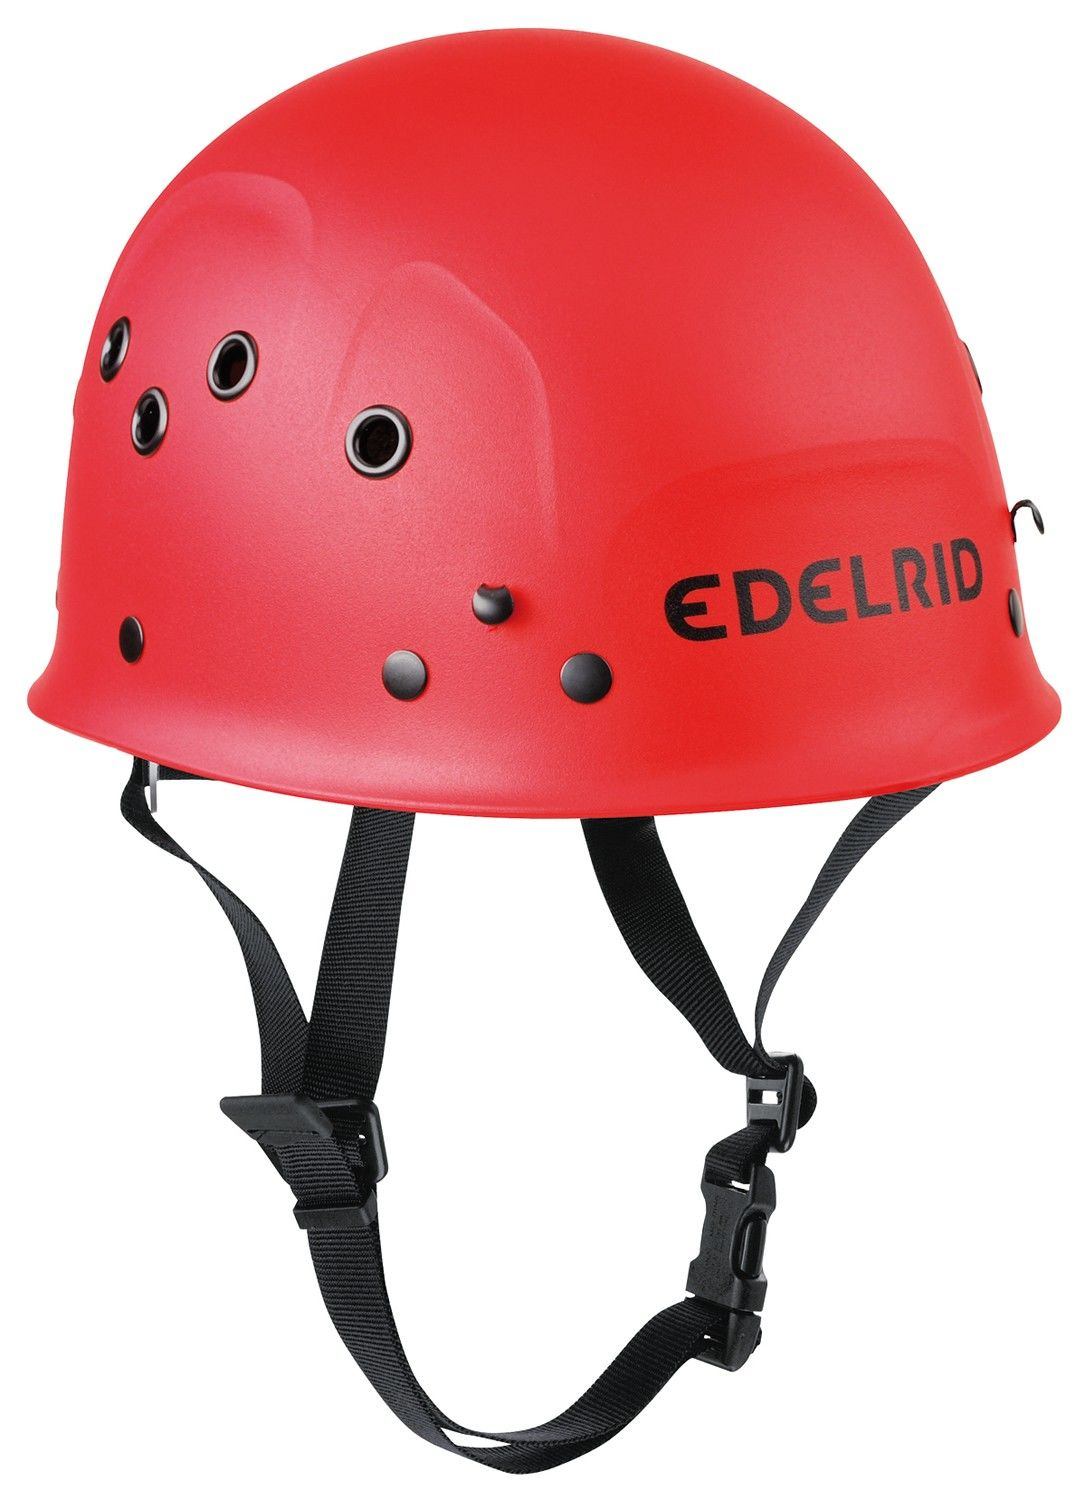 Edelrid Ultralight Junior | Größe 48 - 58 cm | Kinder Kletterhelm